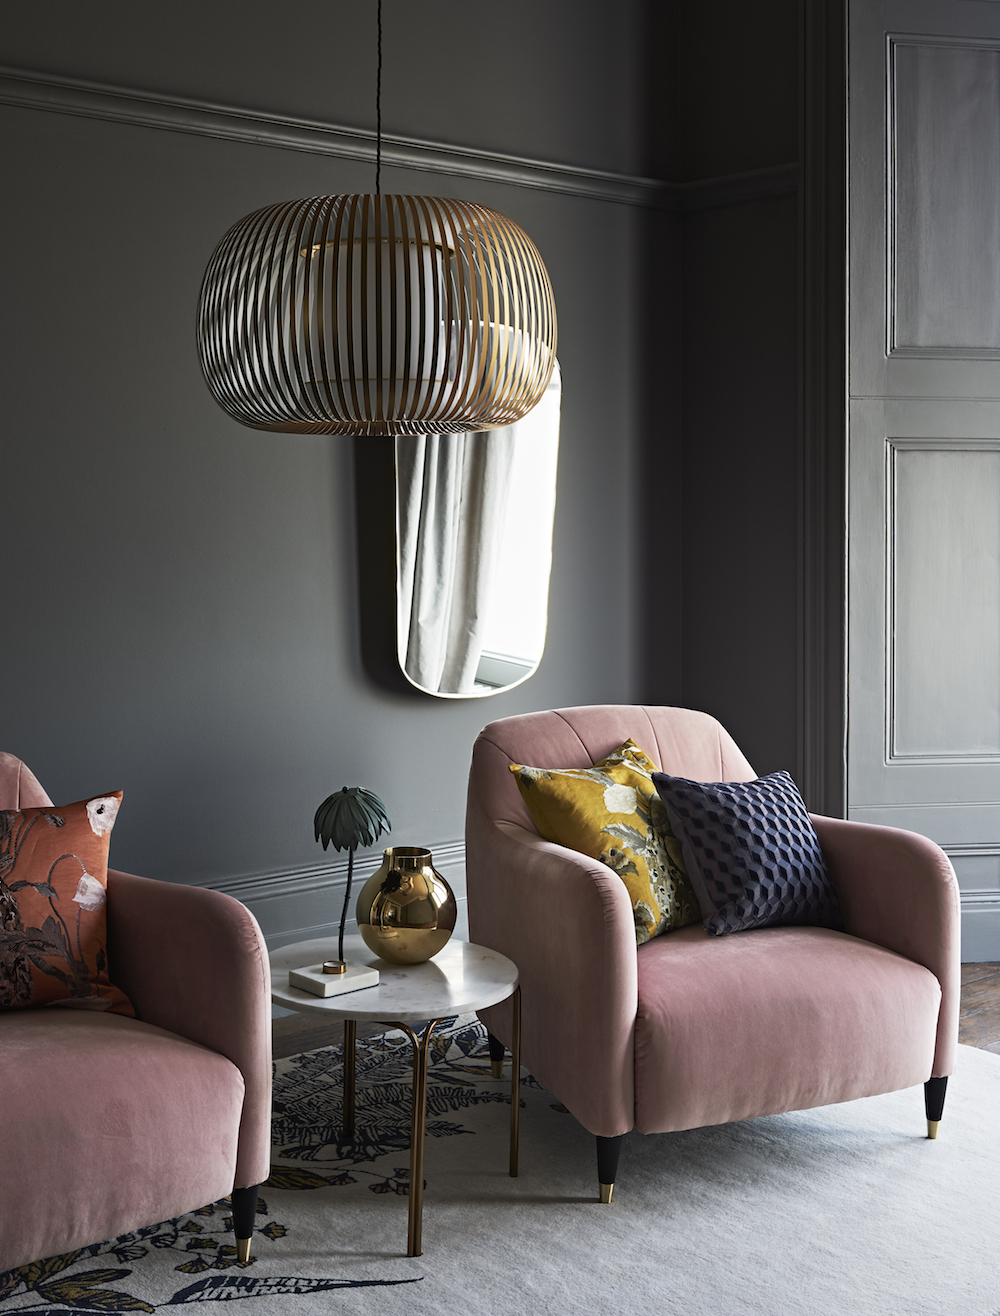 John Lewis Meghan Armchair, £749, Harmony Large Pendant, £150, Marble Side Table, £150, Hays Tapered Gold Fin Mirror, £150